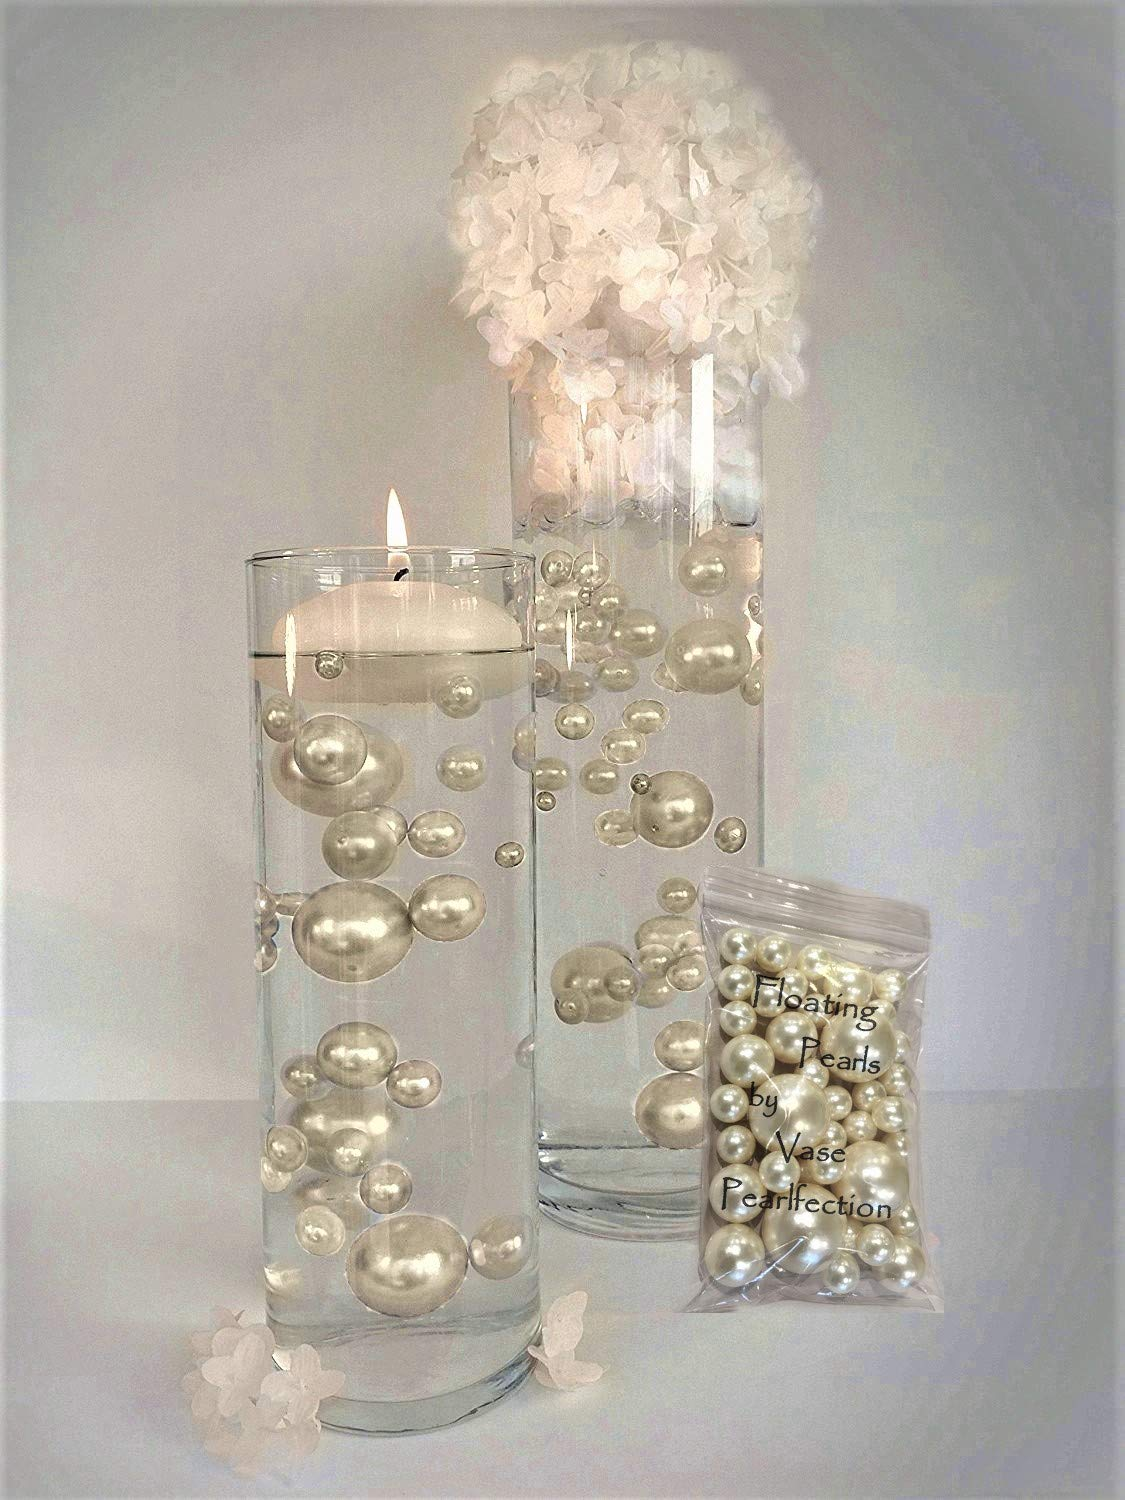 Amazon.com: NO Hole Ivory Pearls - Jumbo/orted Sizes Vase ... on pearl beads, pearl bridal headpieces, pearl flower fillers, pearl locket necklace, pearl acrylic nails, pearl diamond necklace, pearl bridal sash, pearl quotes, pearl spa products, pearl pedicure, pearl ornaments, pearl tassel necklace, pearl foams, pearl hair pins, pearl cookies, pearl quality chart, pearl ring settings, pearl flower necklace, pearl fabric, pearl tattoo,